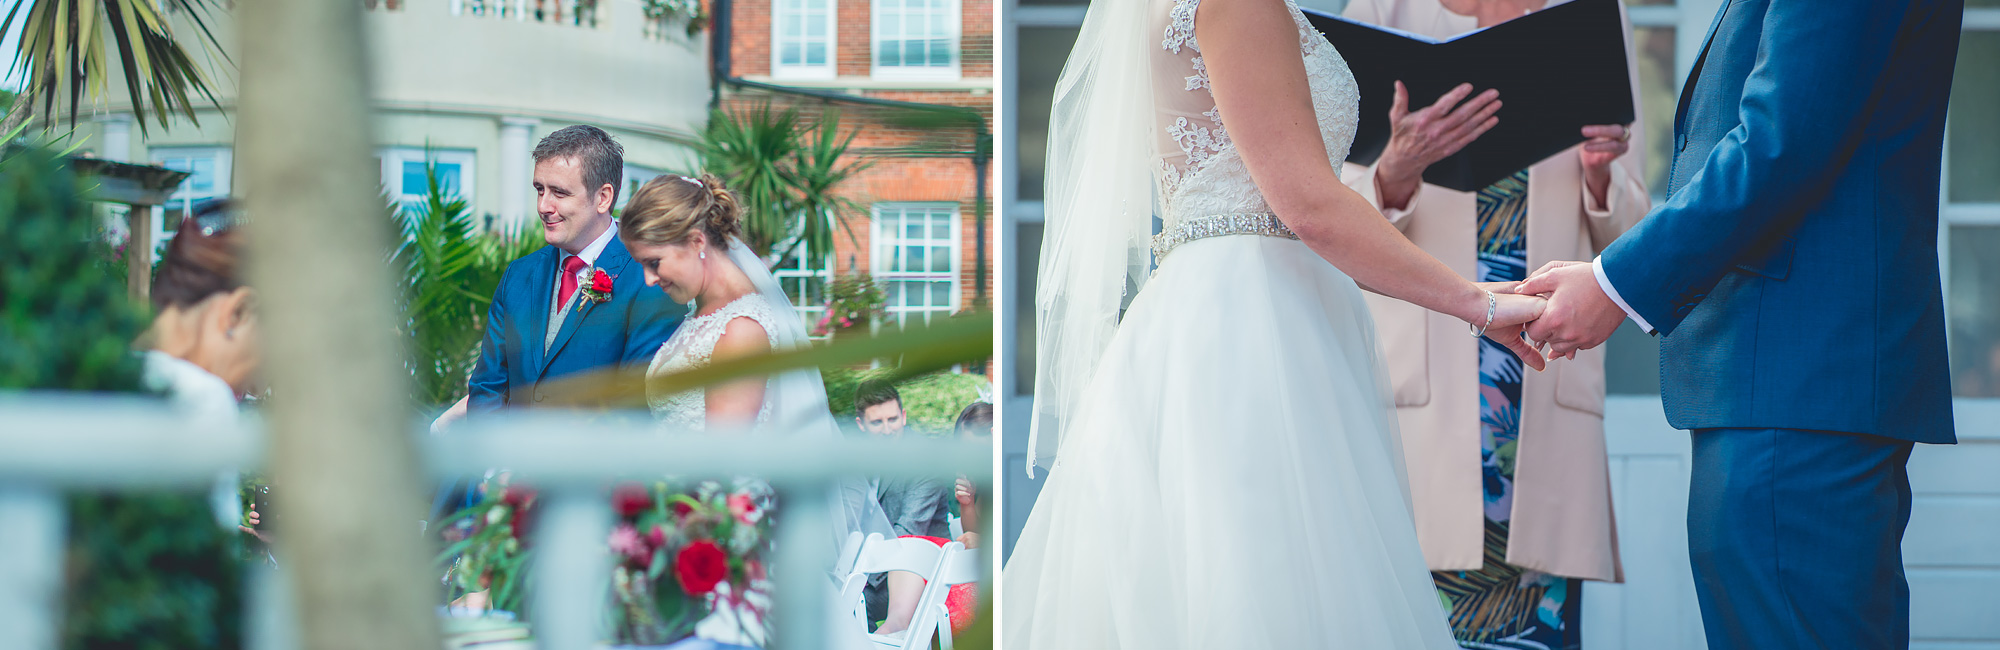 Documentary-Wedding-Photography-Miramar-Hotel-Dorset-2.jpg